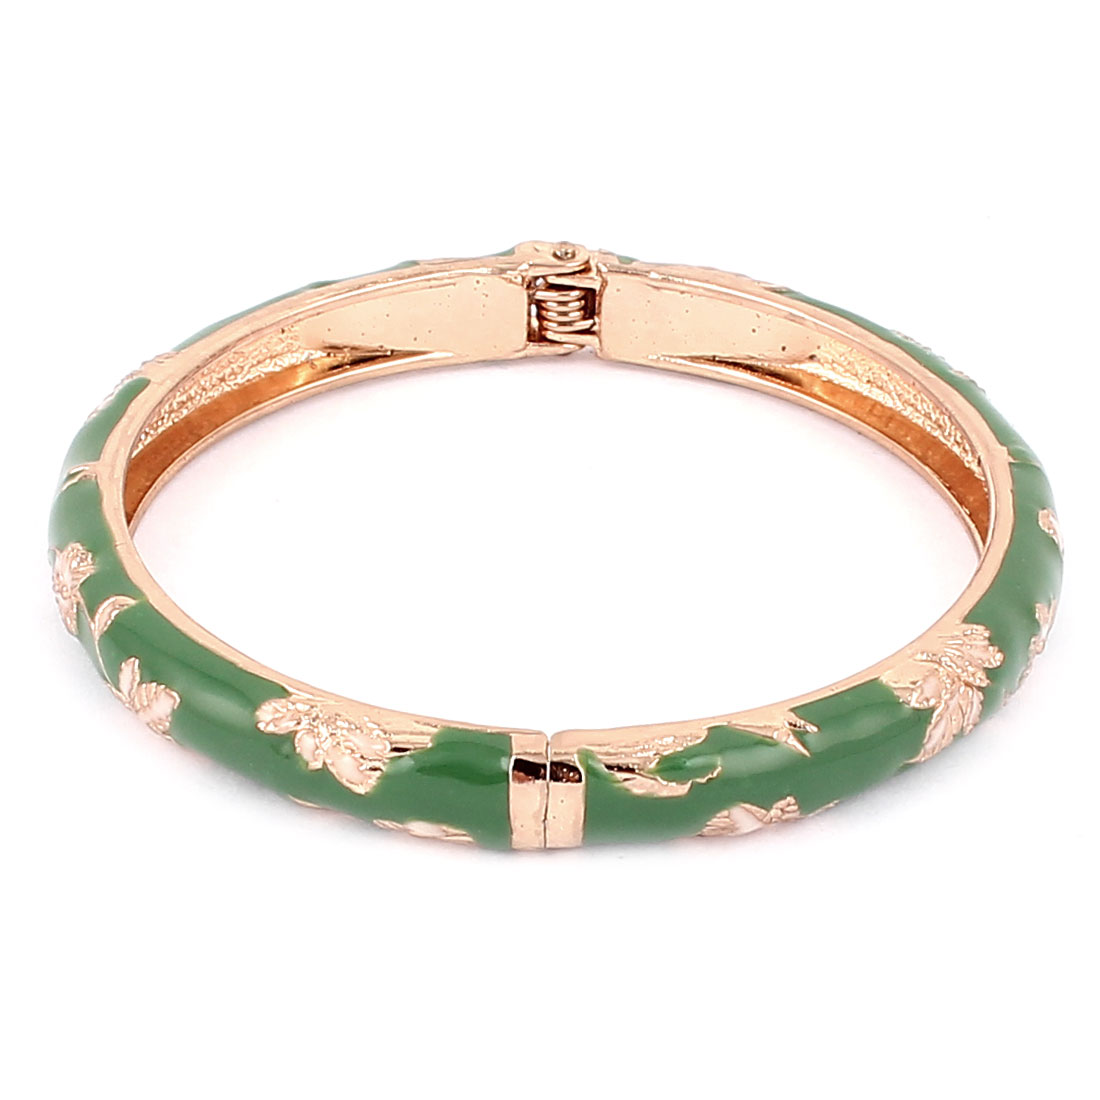 Women Flower Carve Slender Round Bangle Bracelet Wristband Decor Green